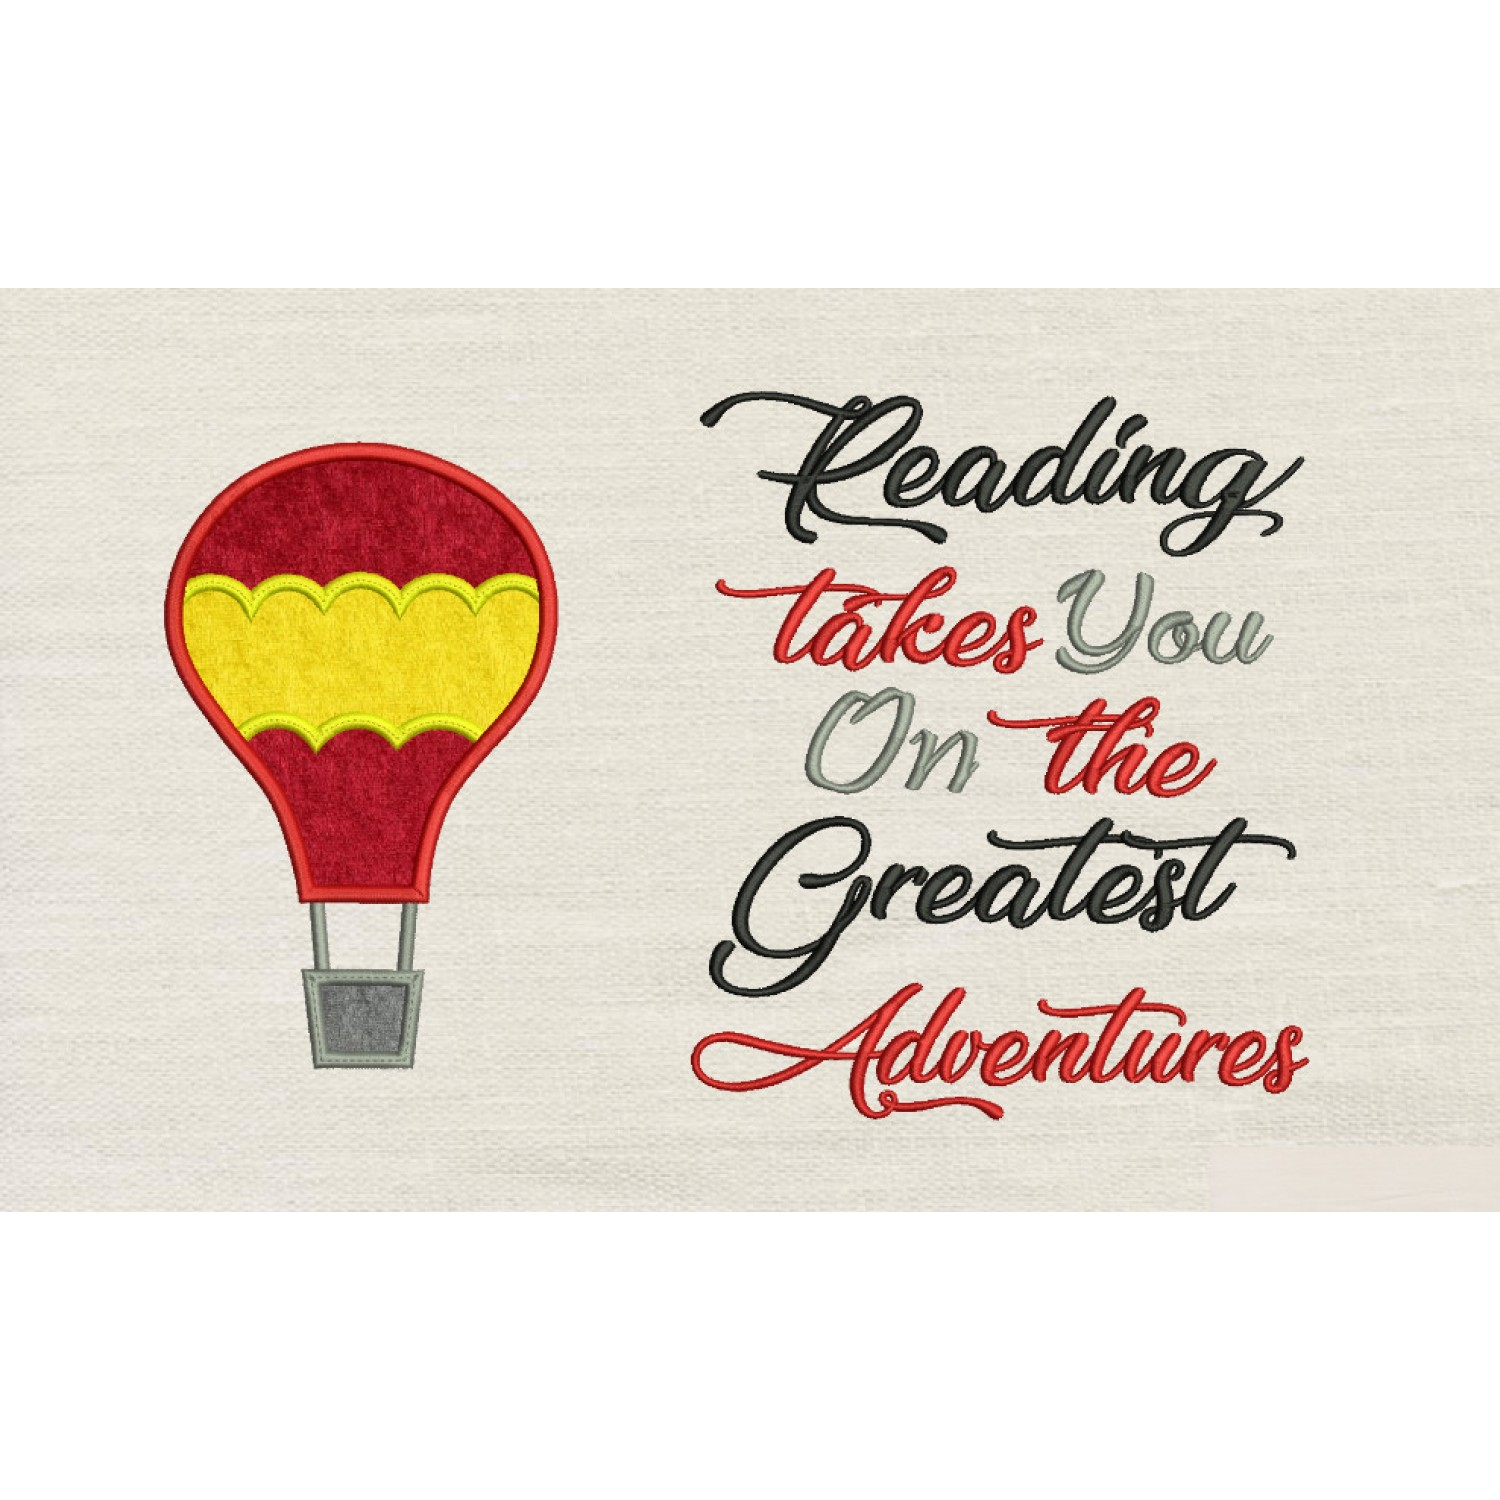 Air Balloon with reading takes you